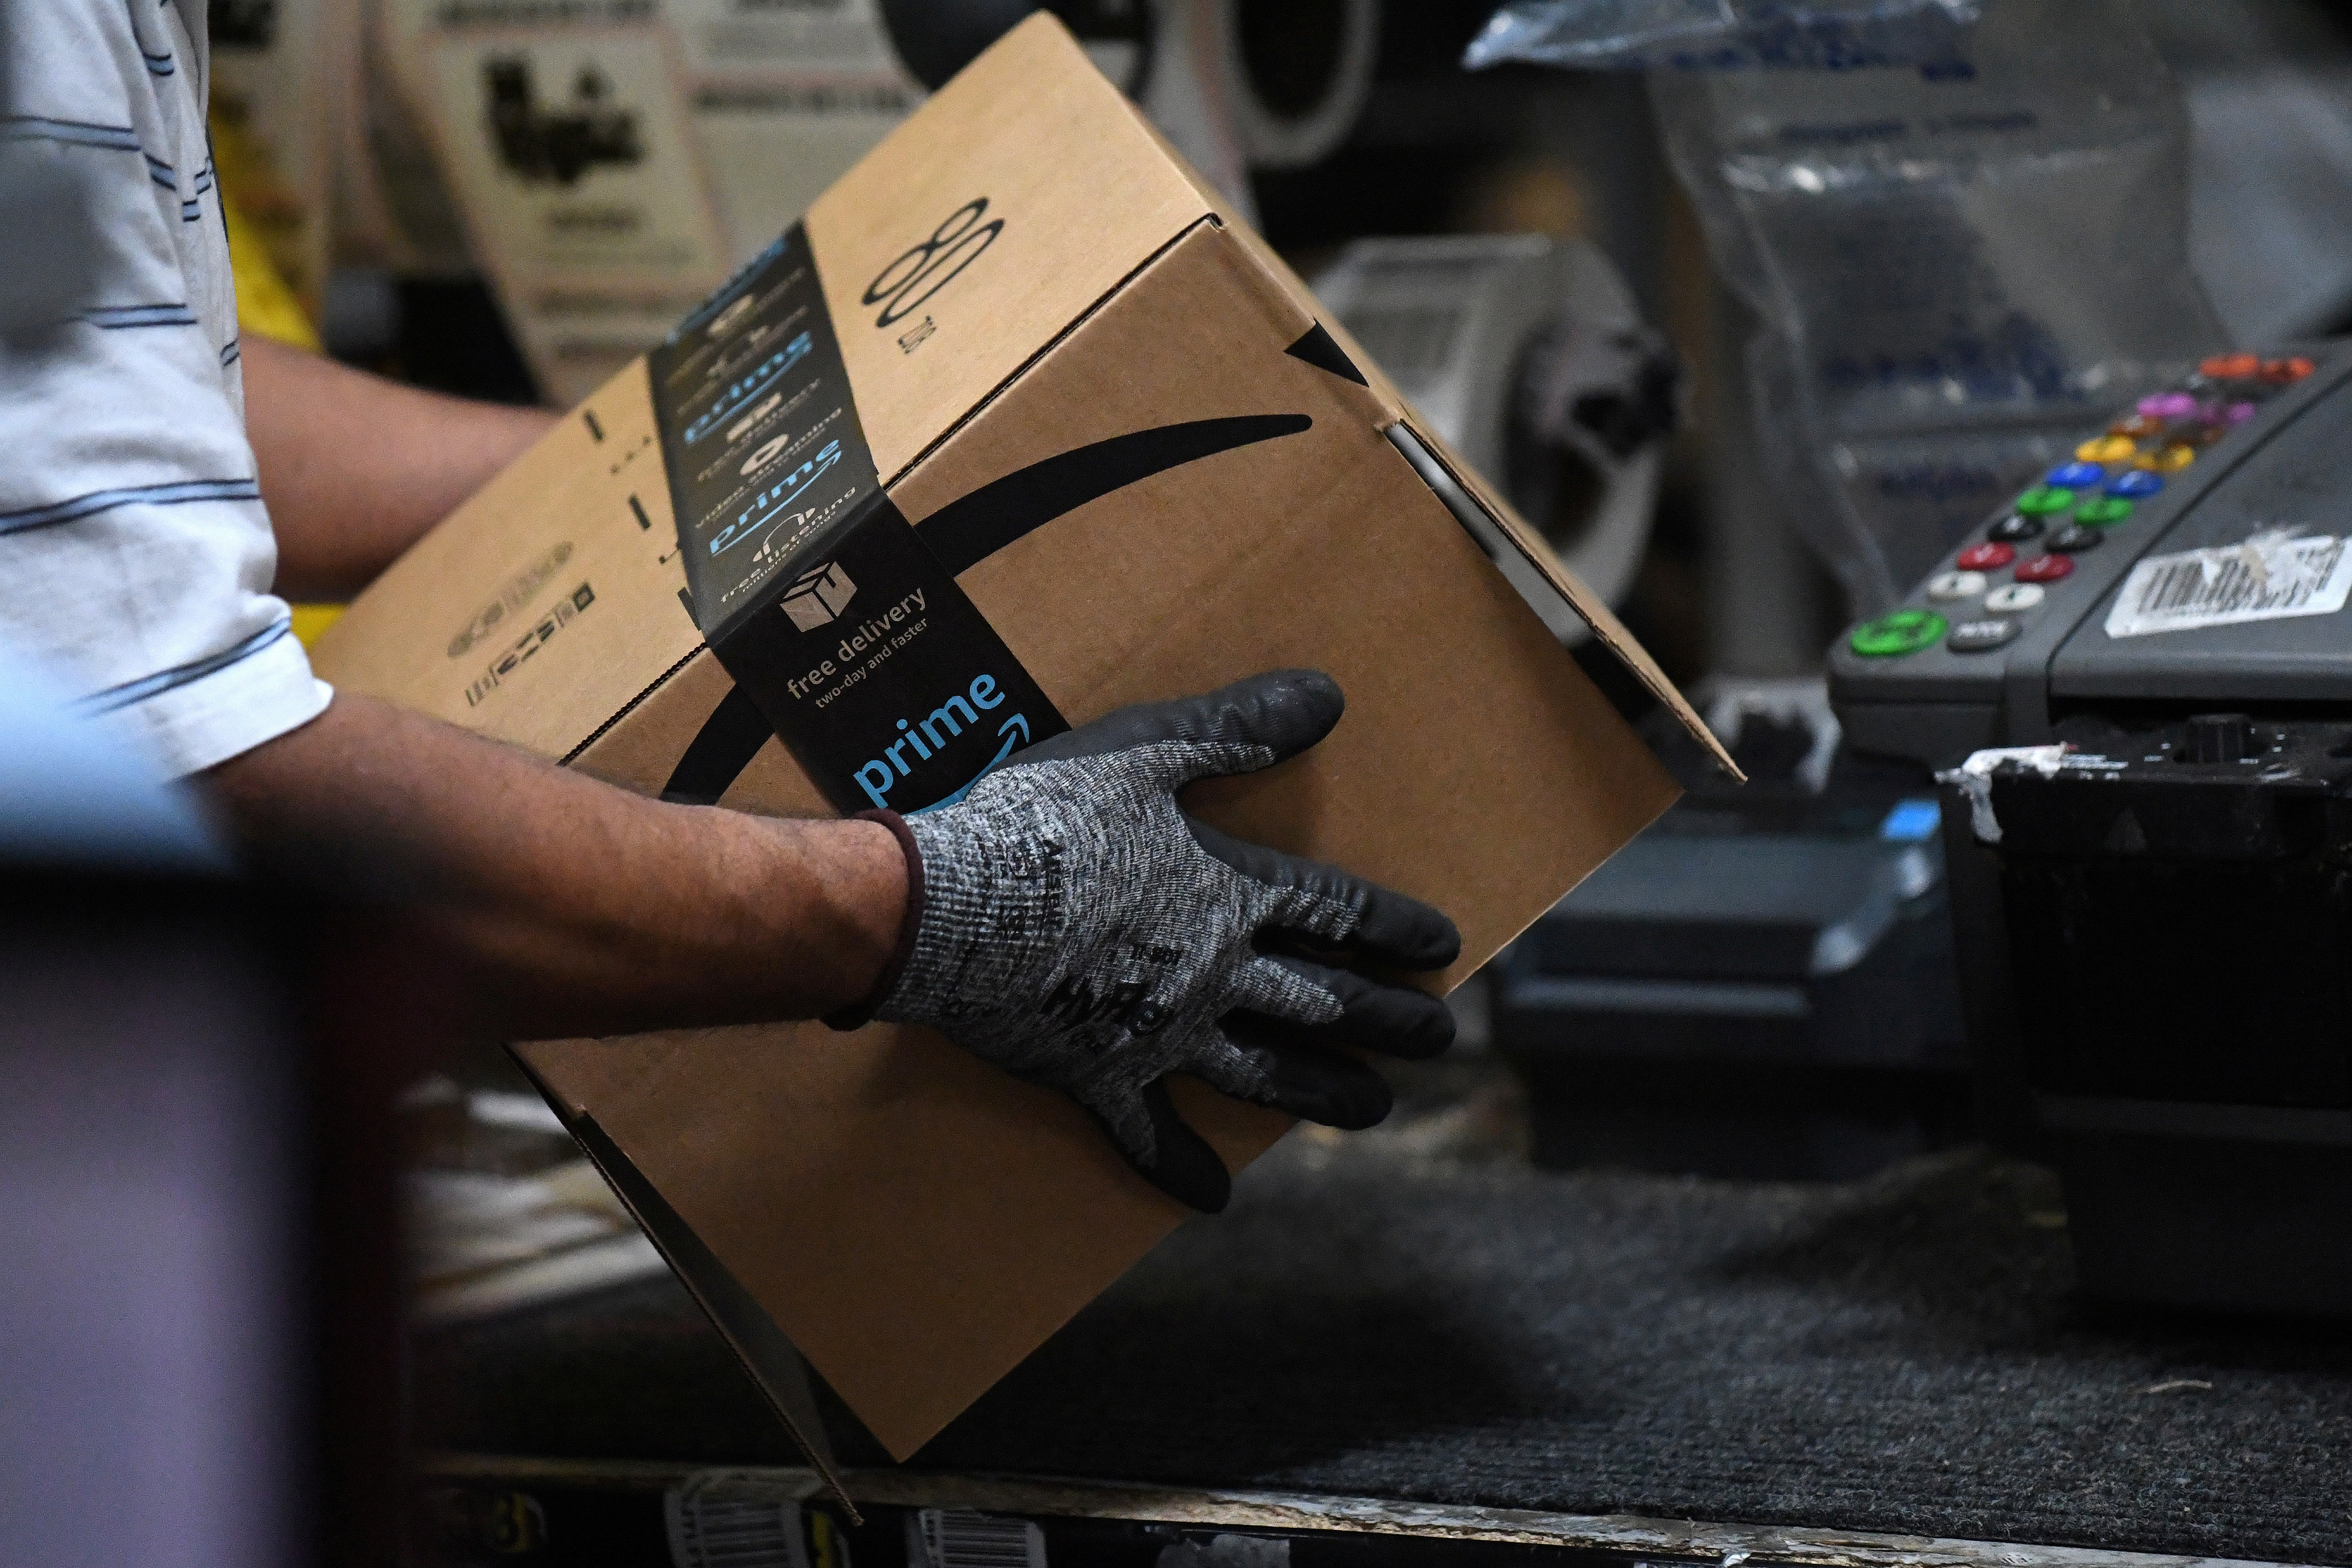 A worker assembles a box for delivery at the Amazon fulfillment center in Baltimore, Maryland, U.S., April 30, 2019. REUTERS/Clodagh Kilcoyne/File Photo